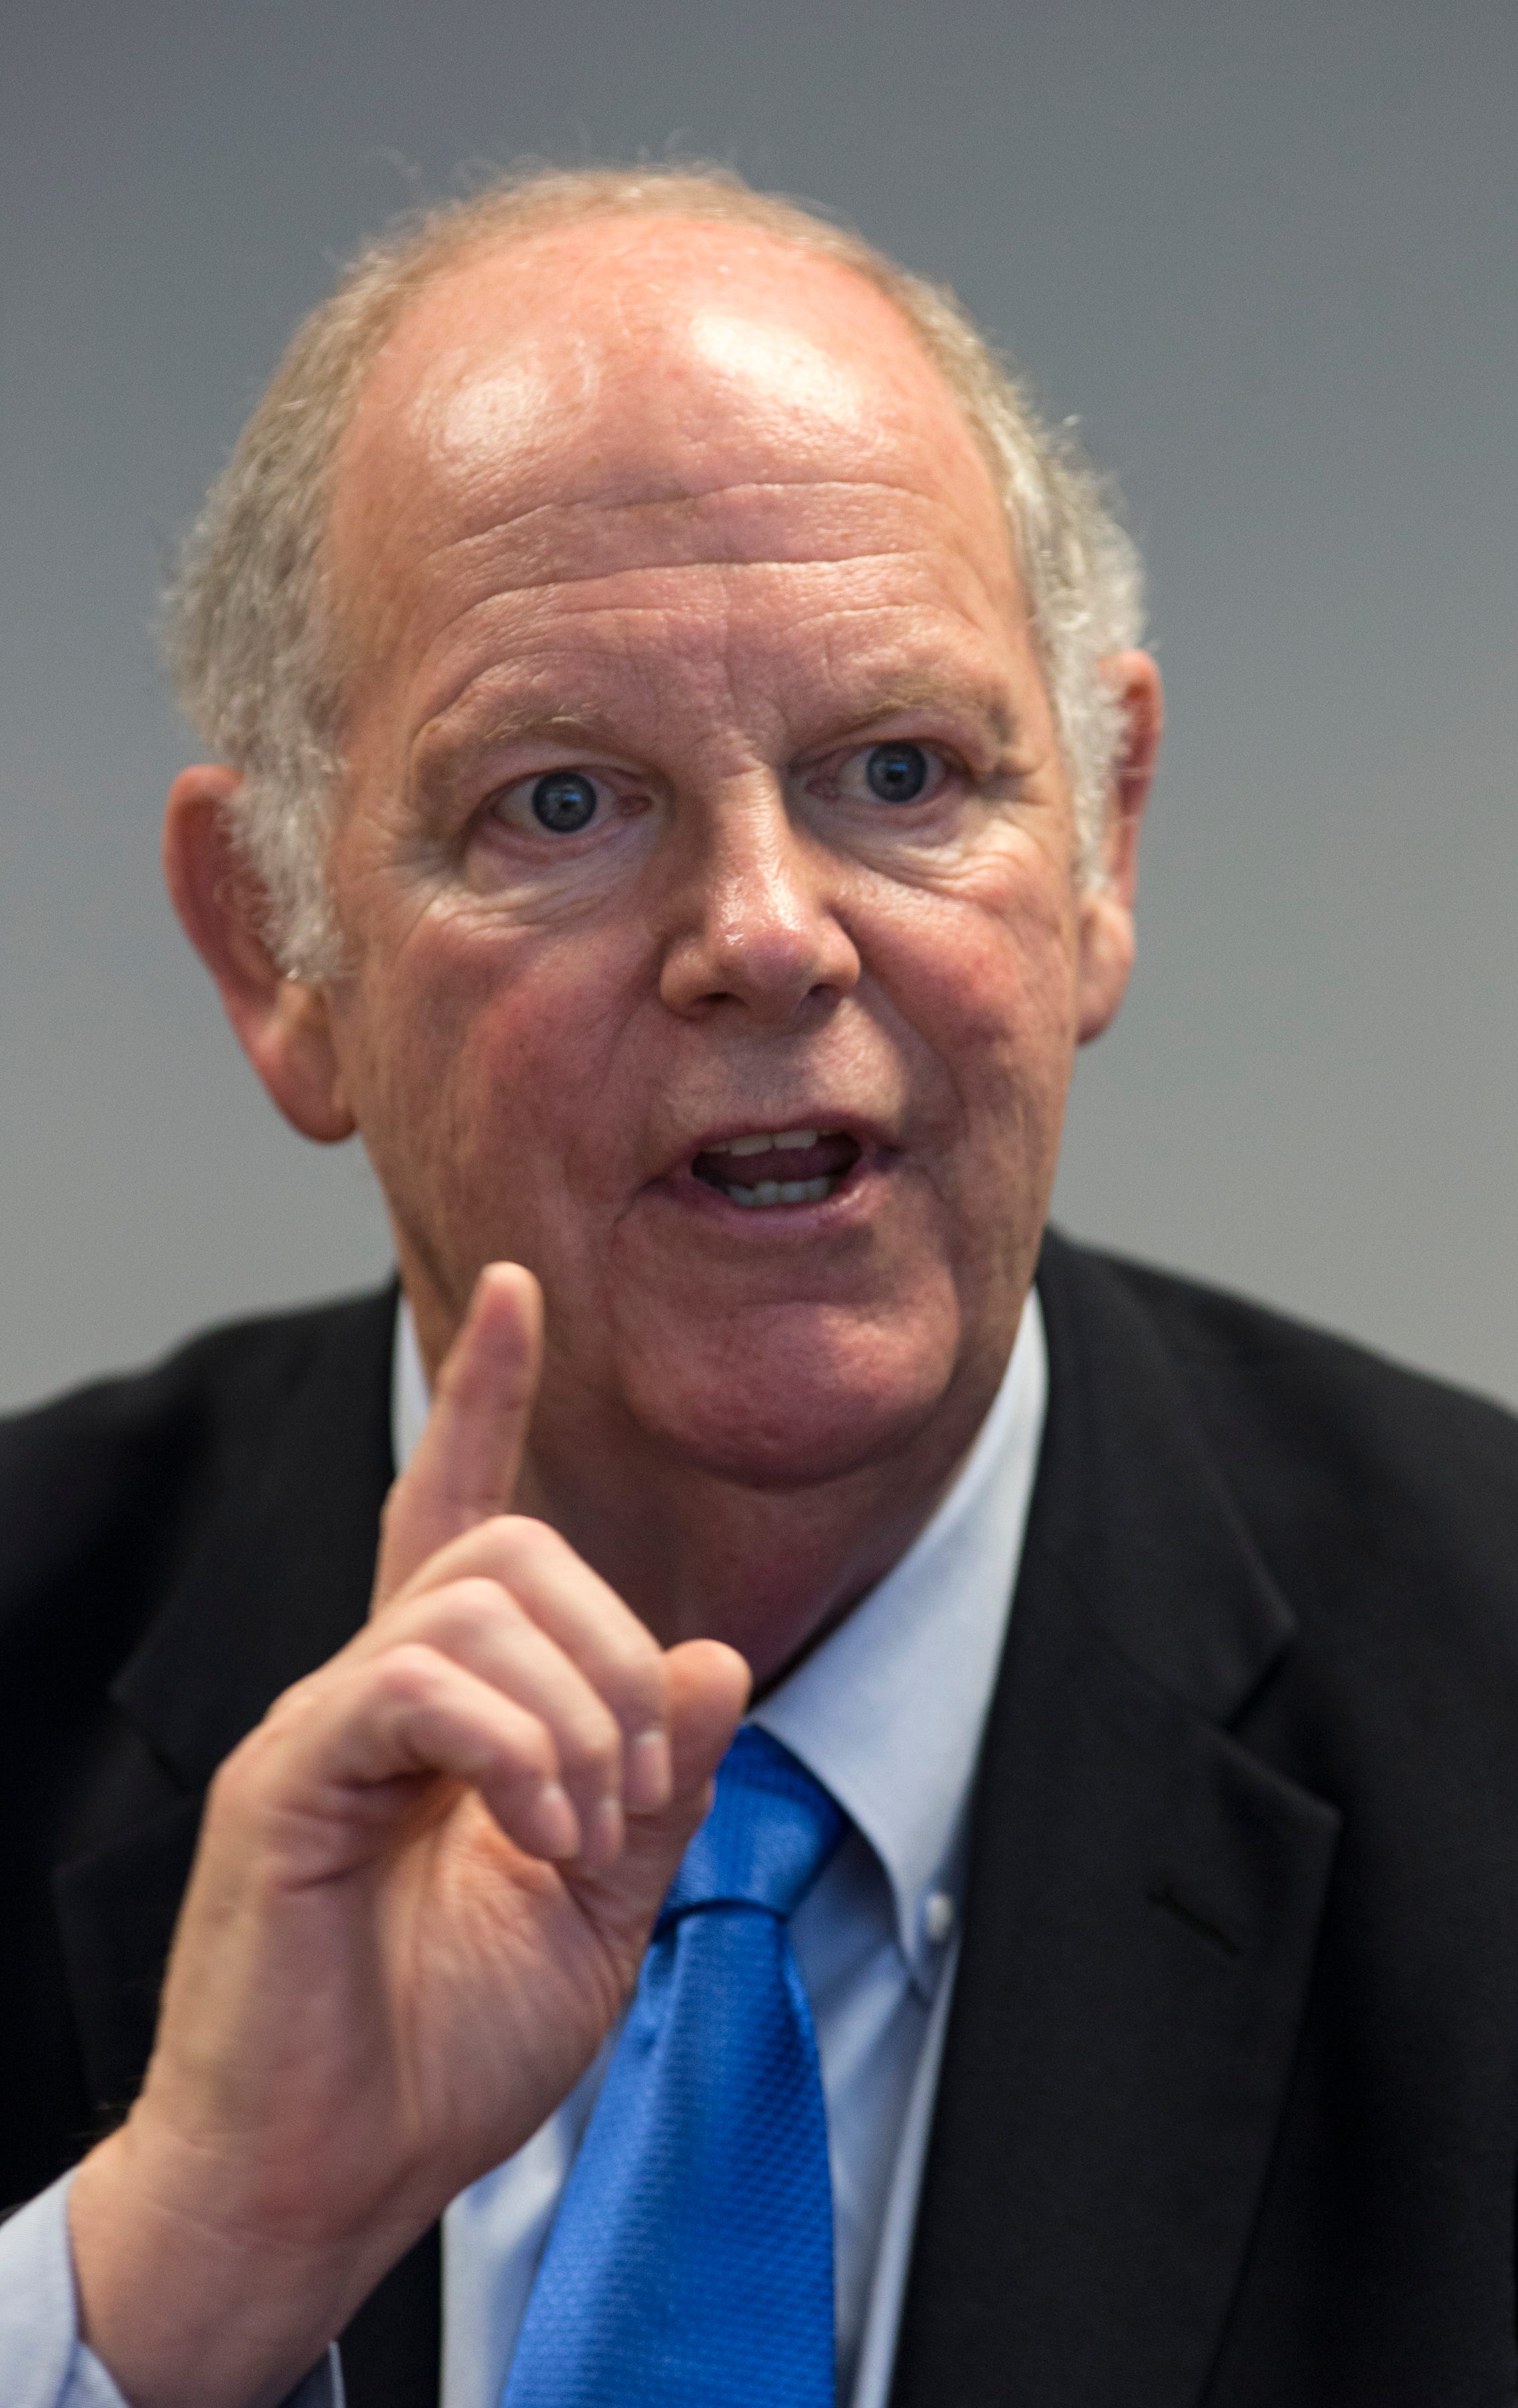 GOP activists caught posing as communists trying to help Tom O'Halleran | Arizona Central